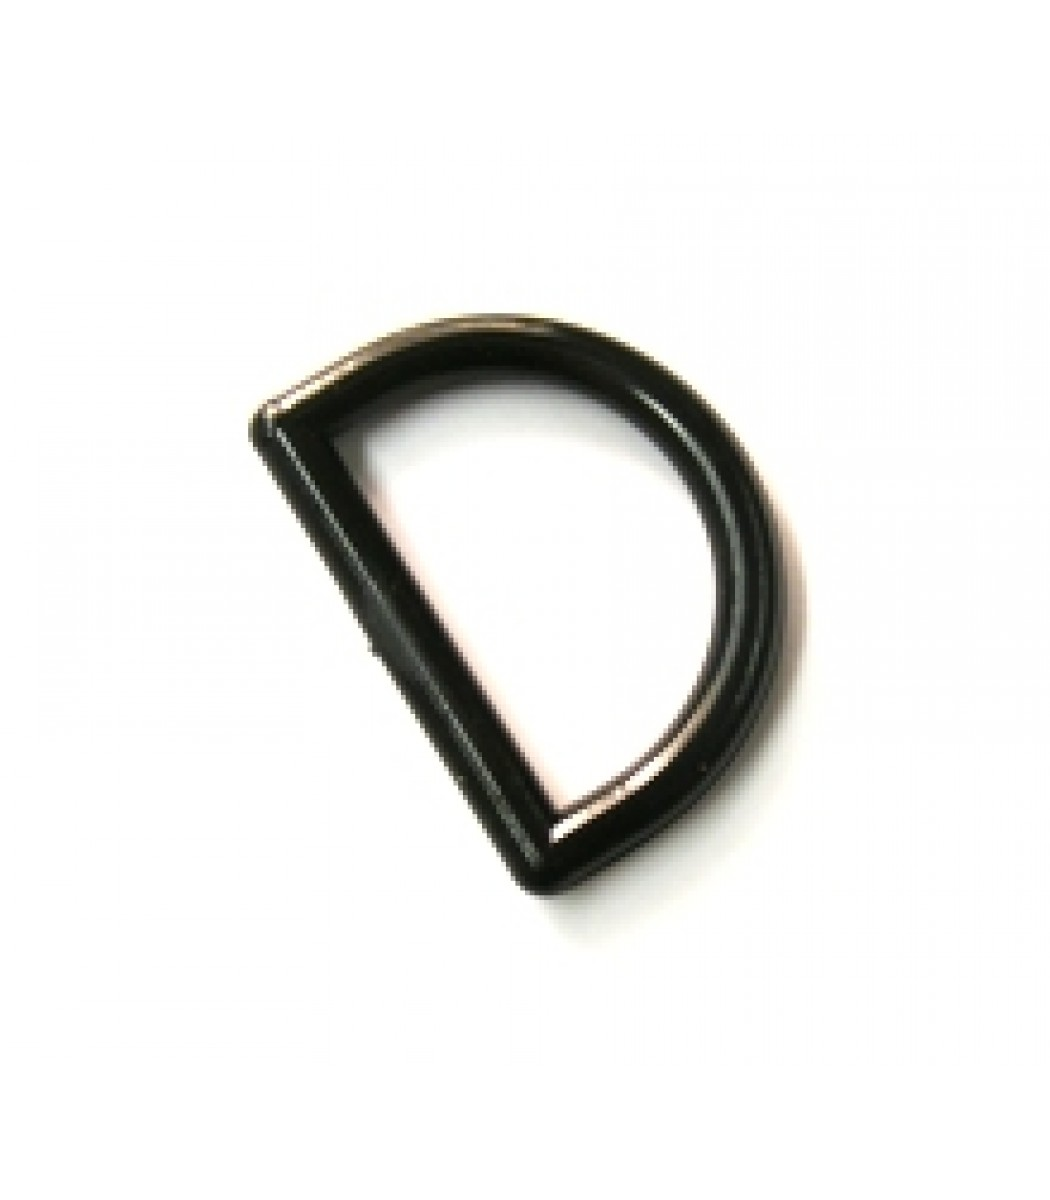 get ring for bag wholesale black webbing o pcs on buckle plastic aliexpress shipping com free belts w use buy and rings